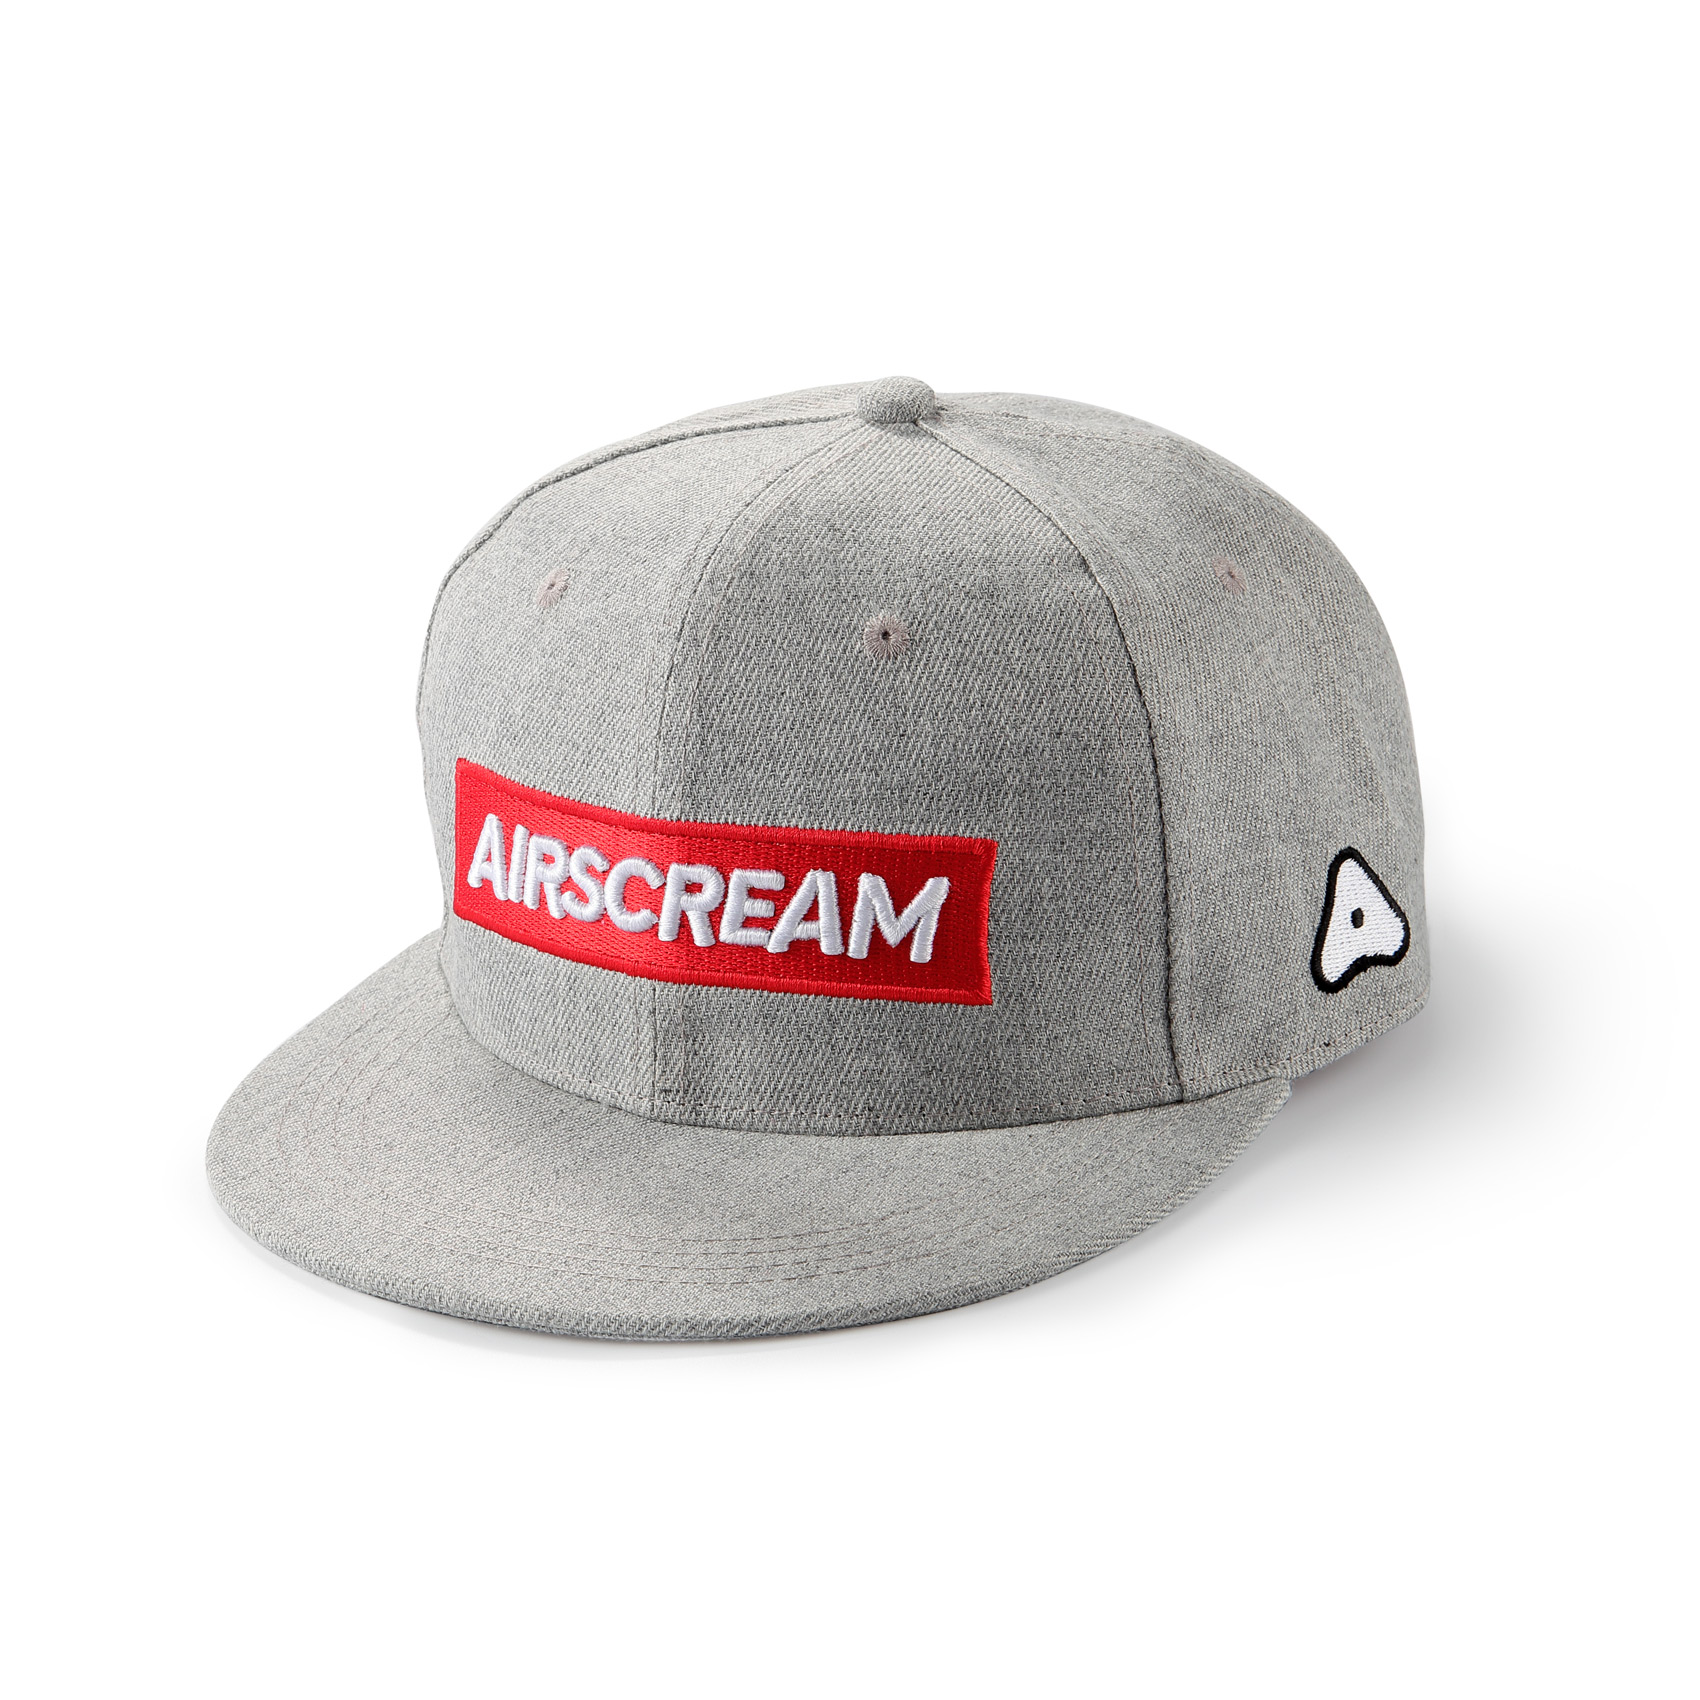 AIRSCREAM CAP GREY